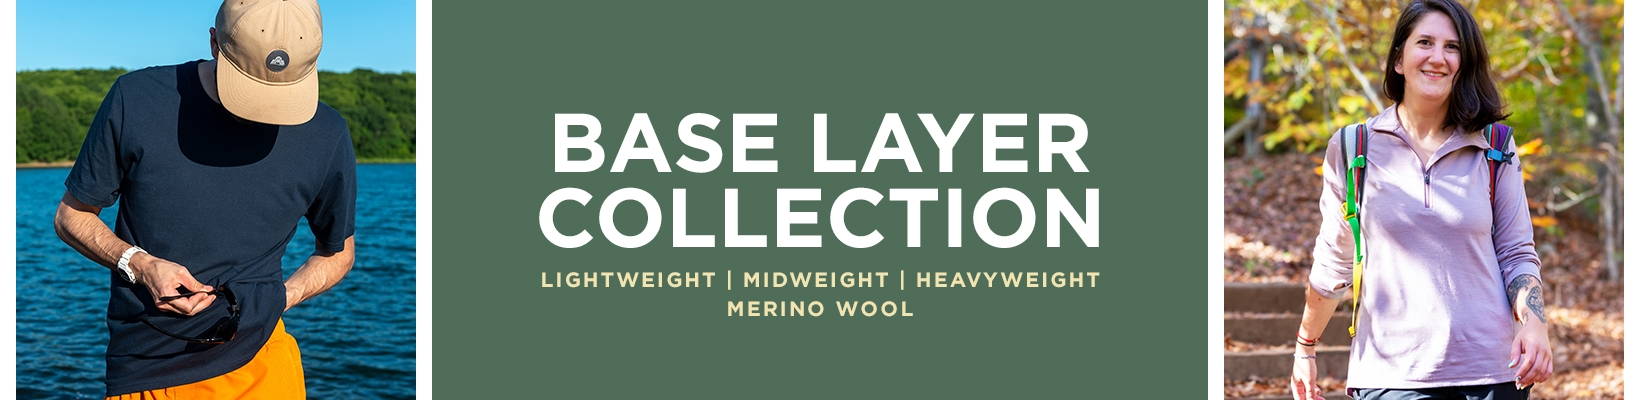 Base Layer Collection